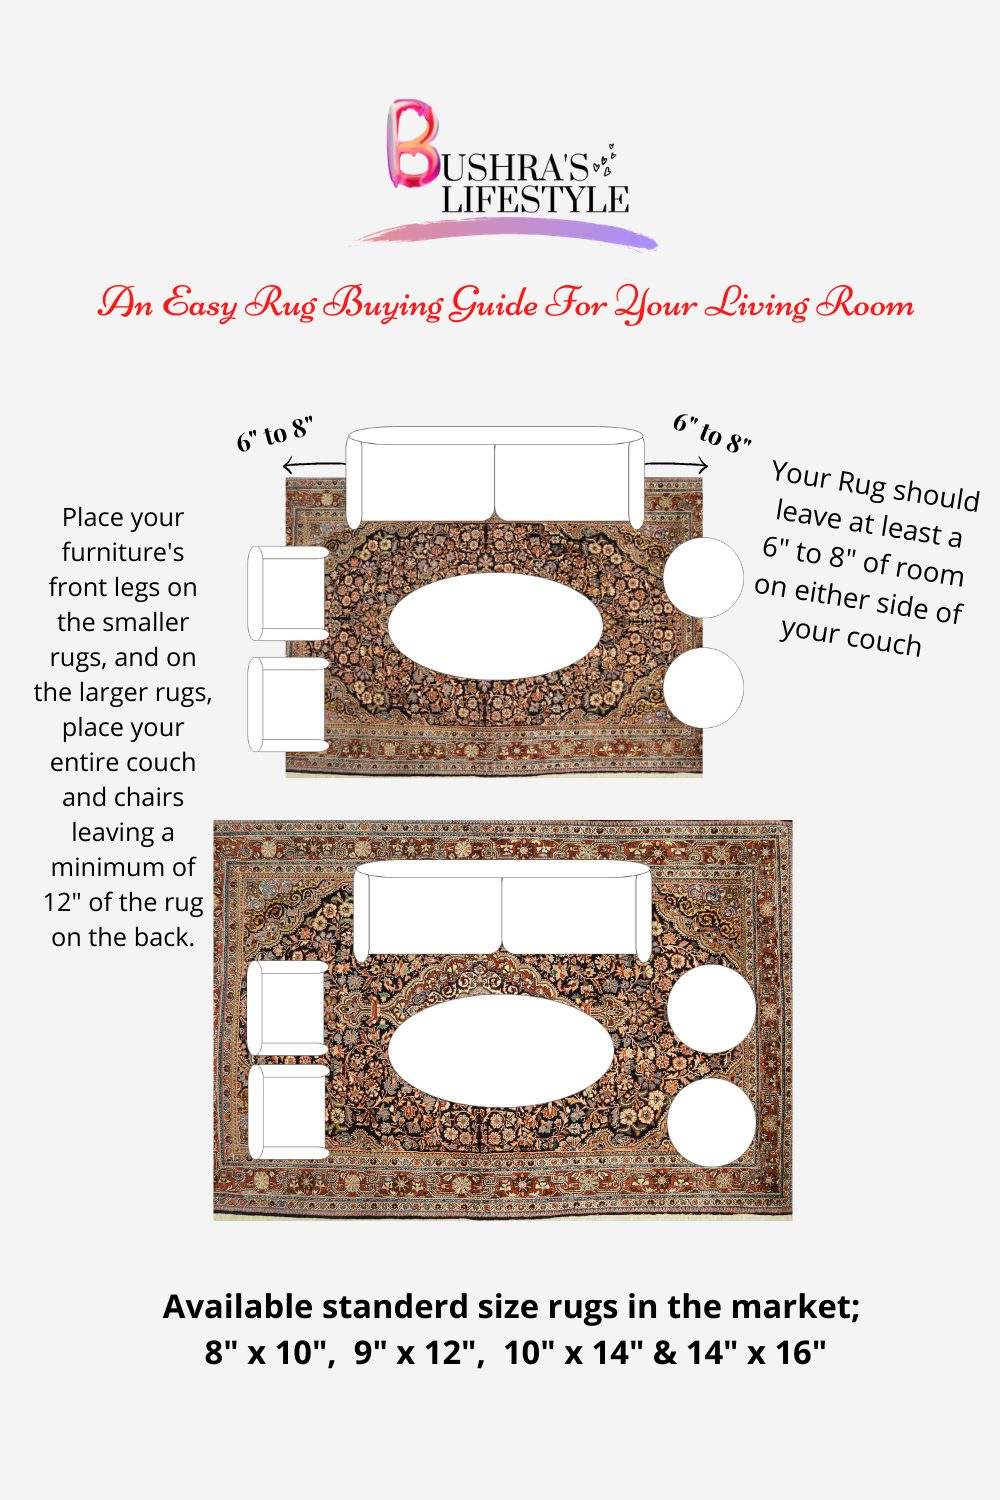 What size rug should I buy for my living room